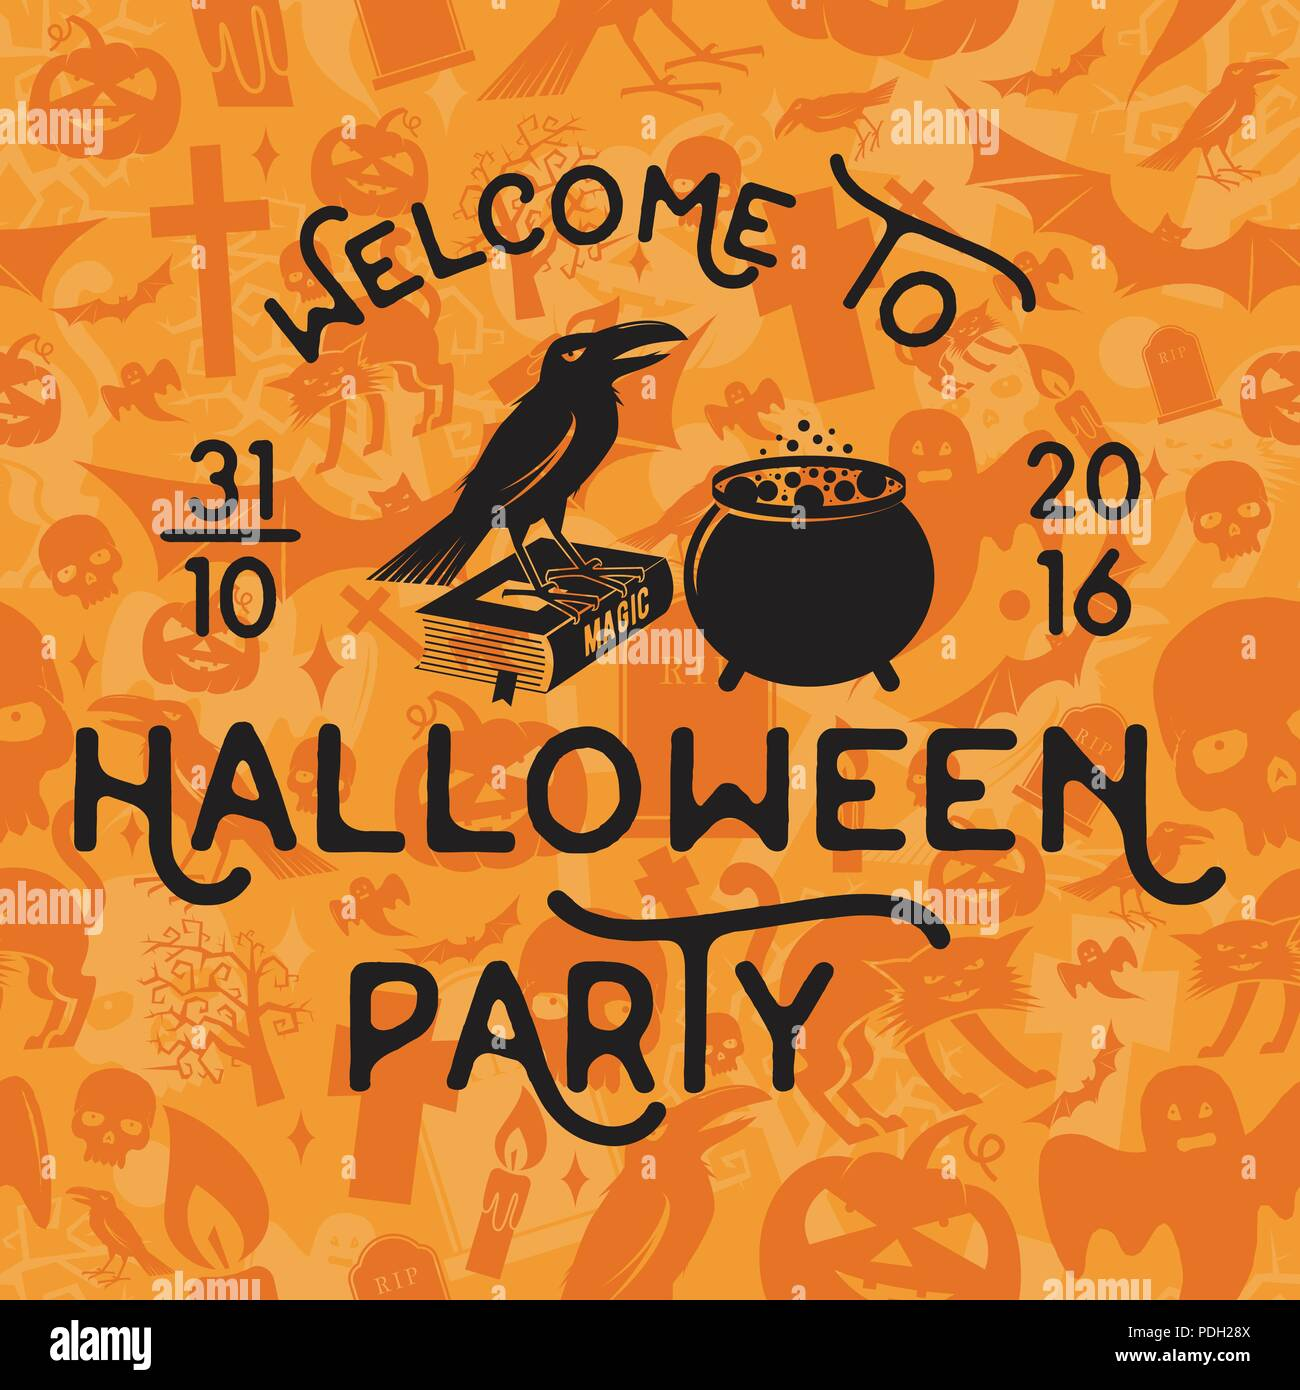 Welcome to Halloween party. Vector Halloween retro badge. Concept for shirt, logo, print, stamp, seal or patch. Crow, magic book and pot. Halloween de - Stock Image